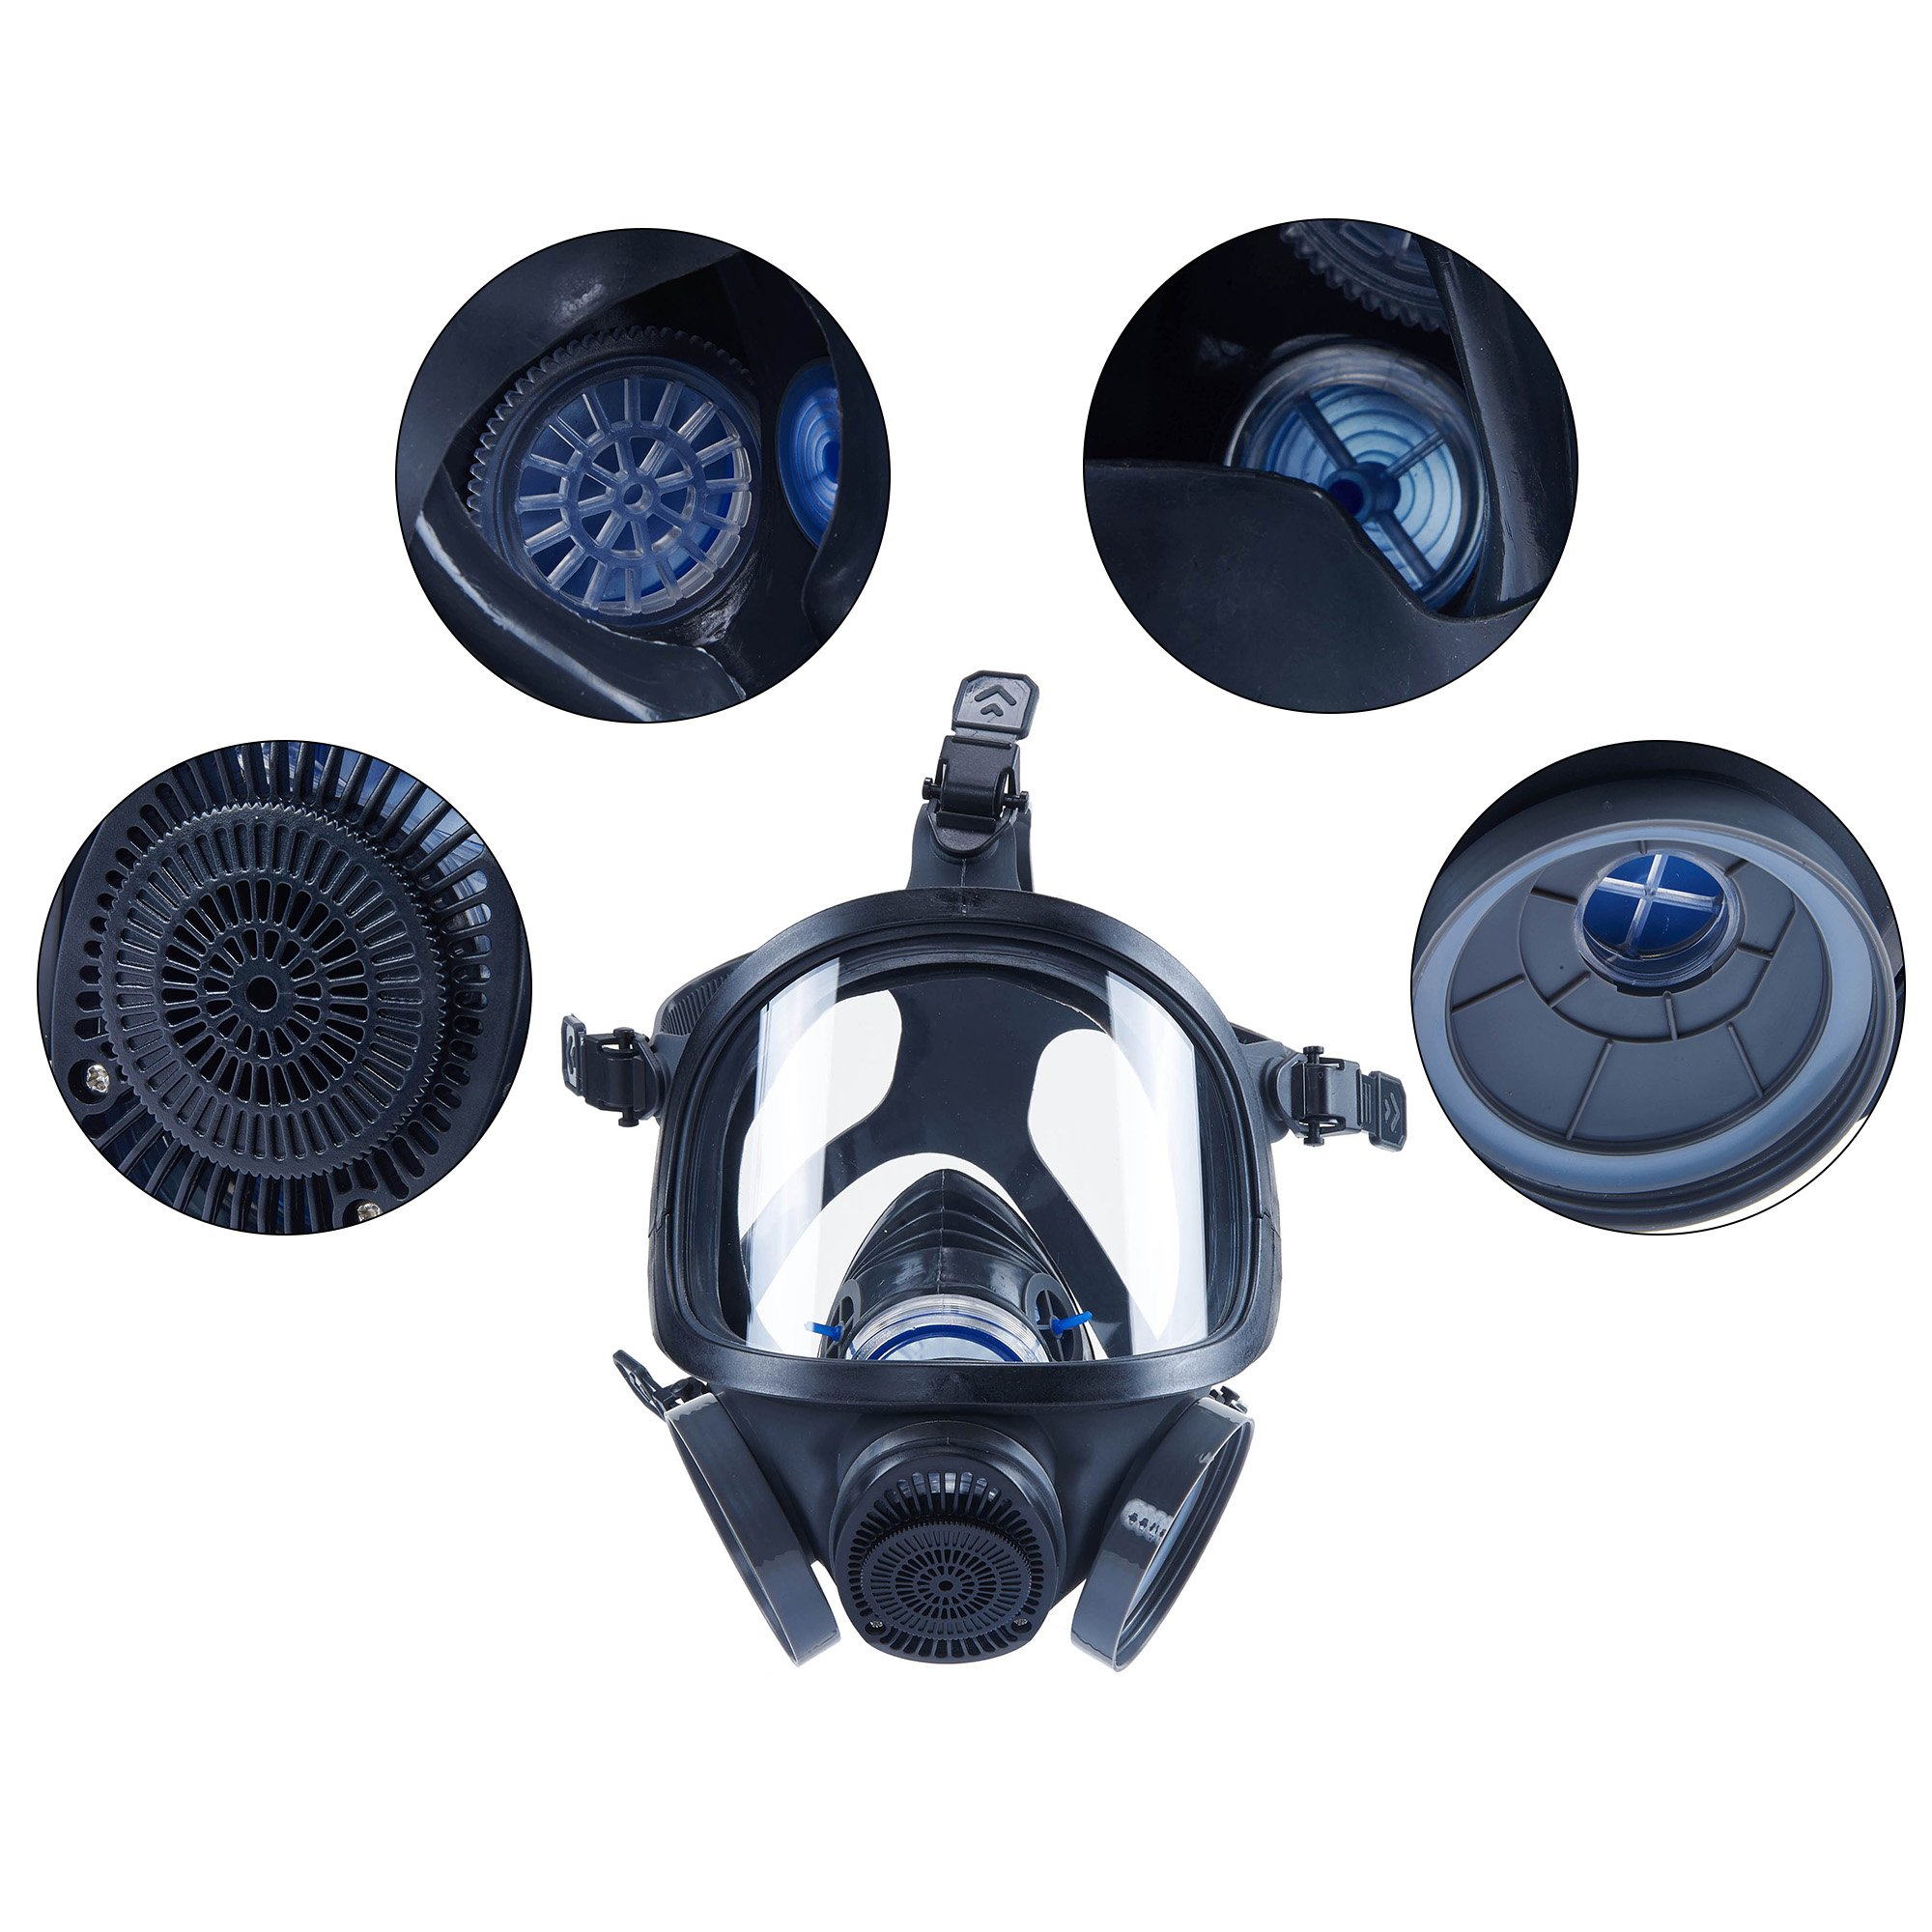 Holulo ST-M70-3 Organic Full Face Respirator Safety Mask (ST-M70-3 Mask+1 Pair 3# filter Cartridges) by Holulo (Image #8)